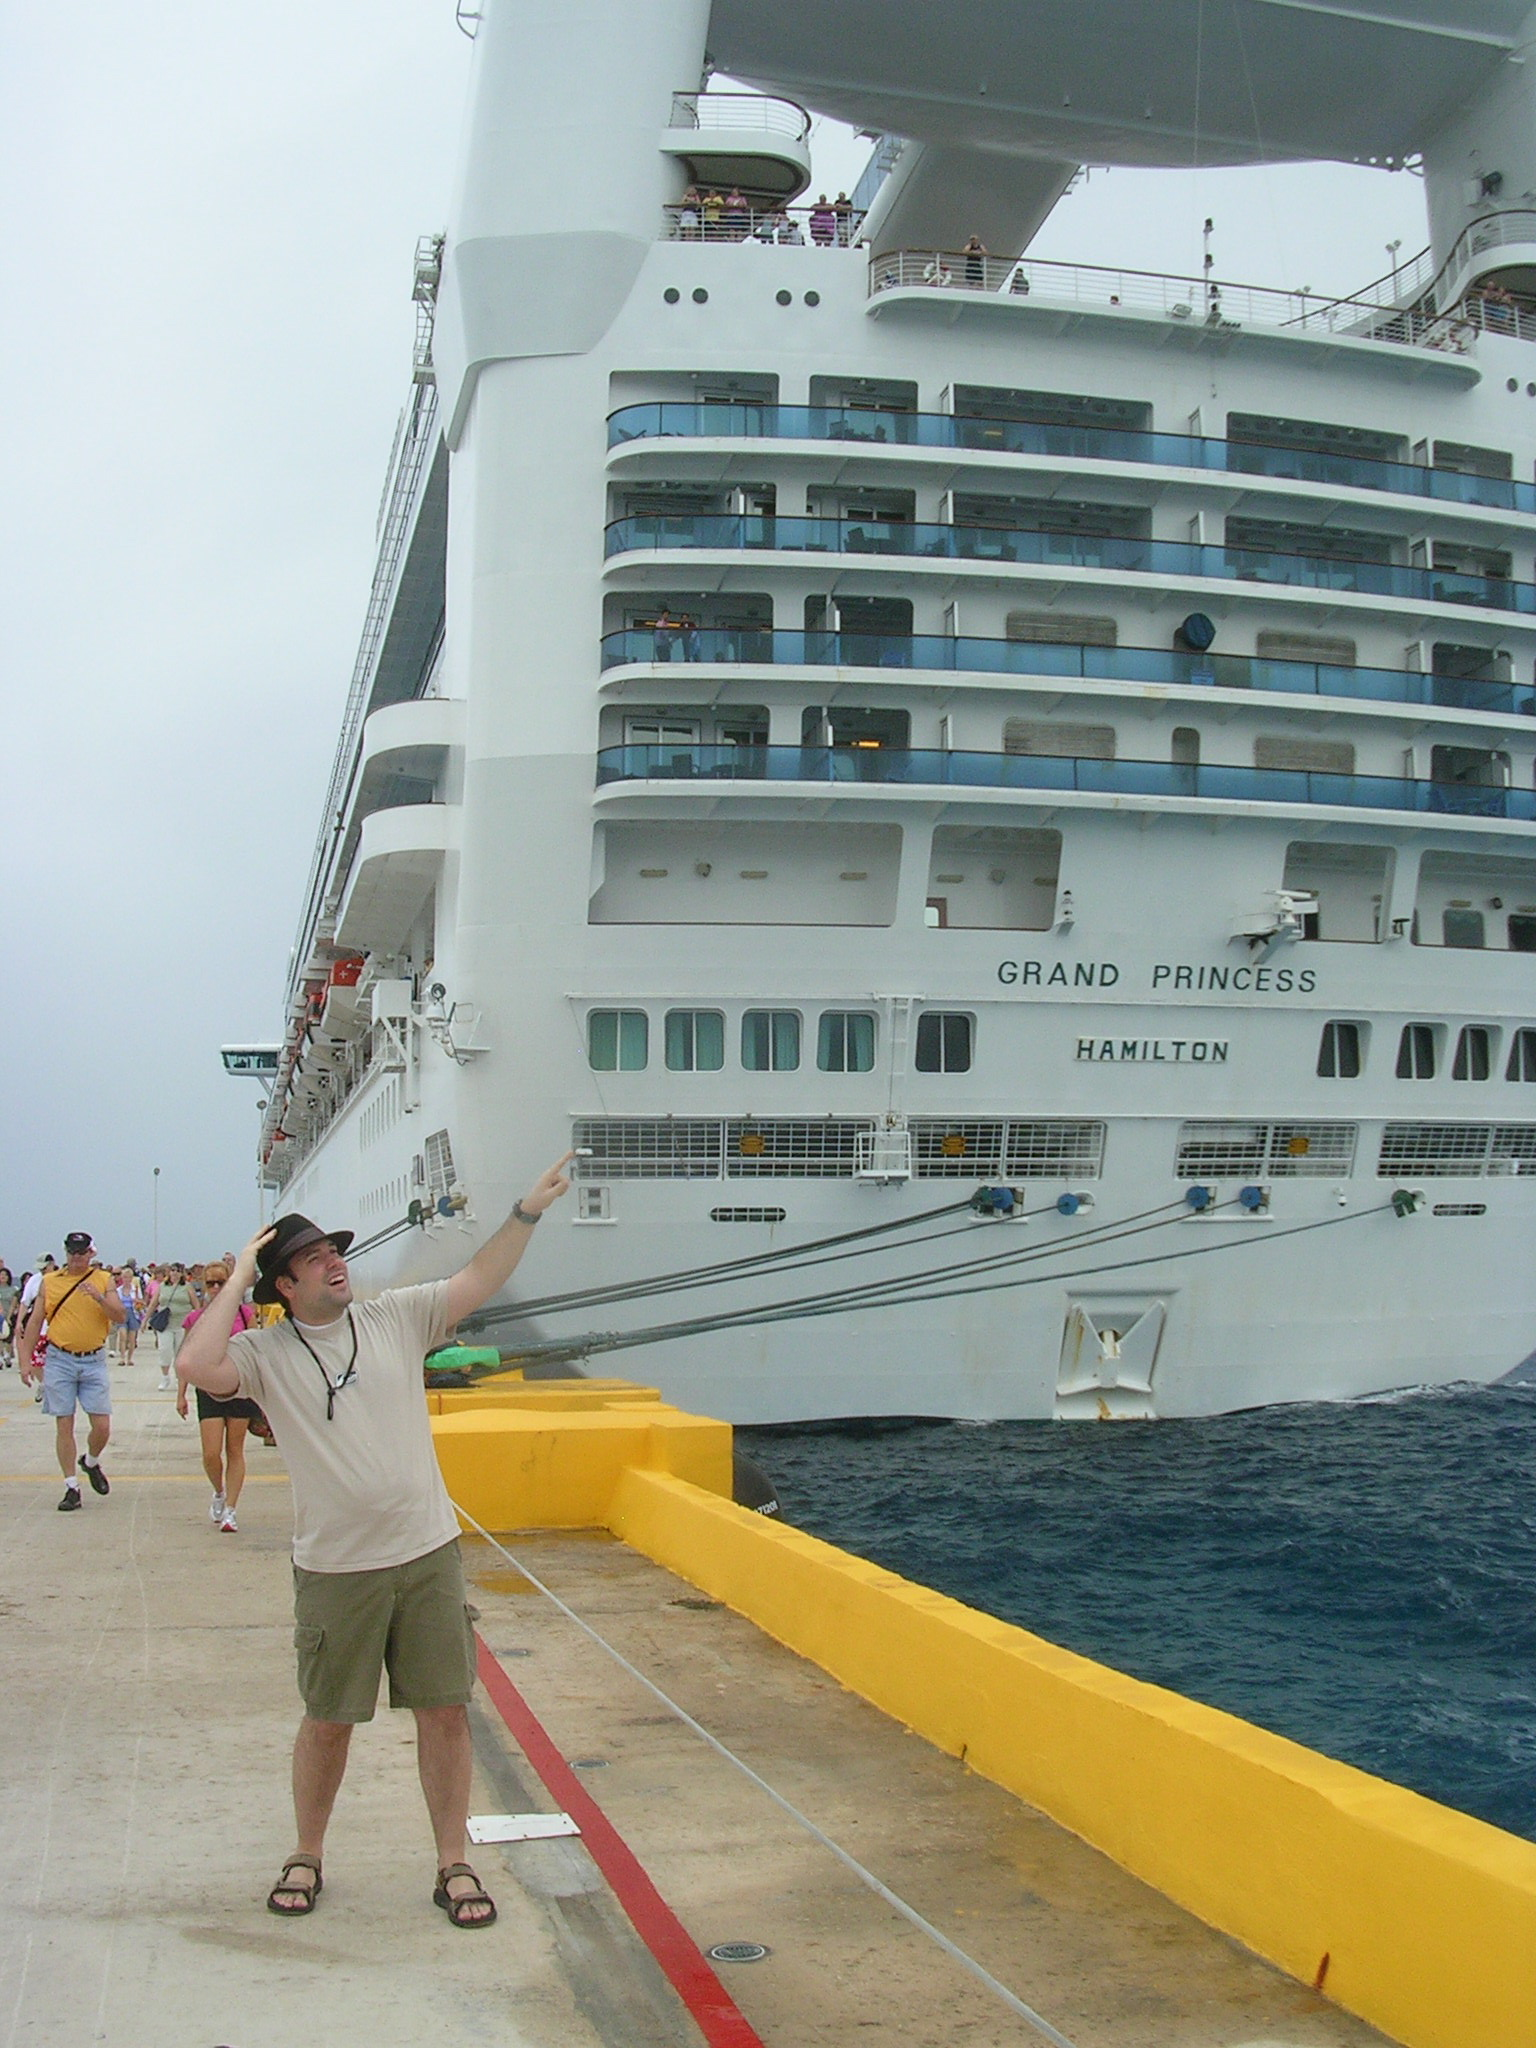 Turning a Cruise Full of Old People into a Death Defying Adventure